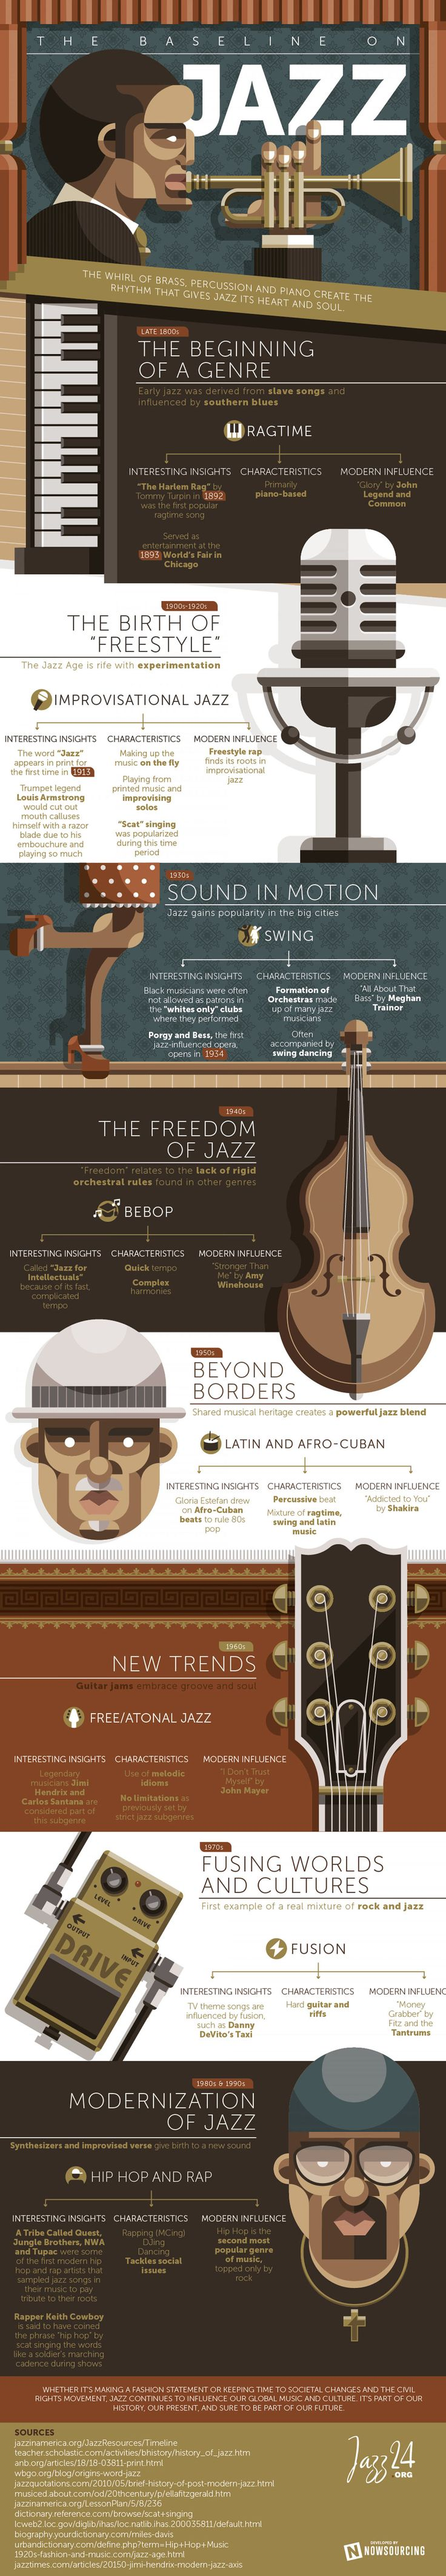 History Of Jazz - Music Infographic